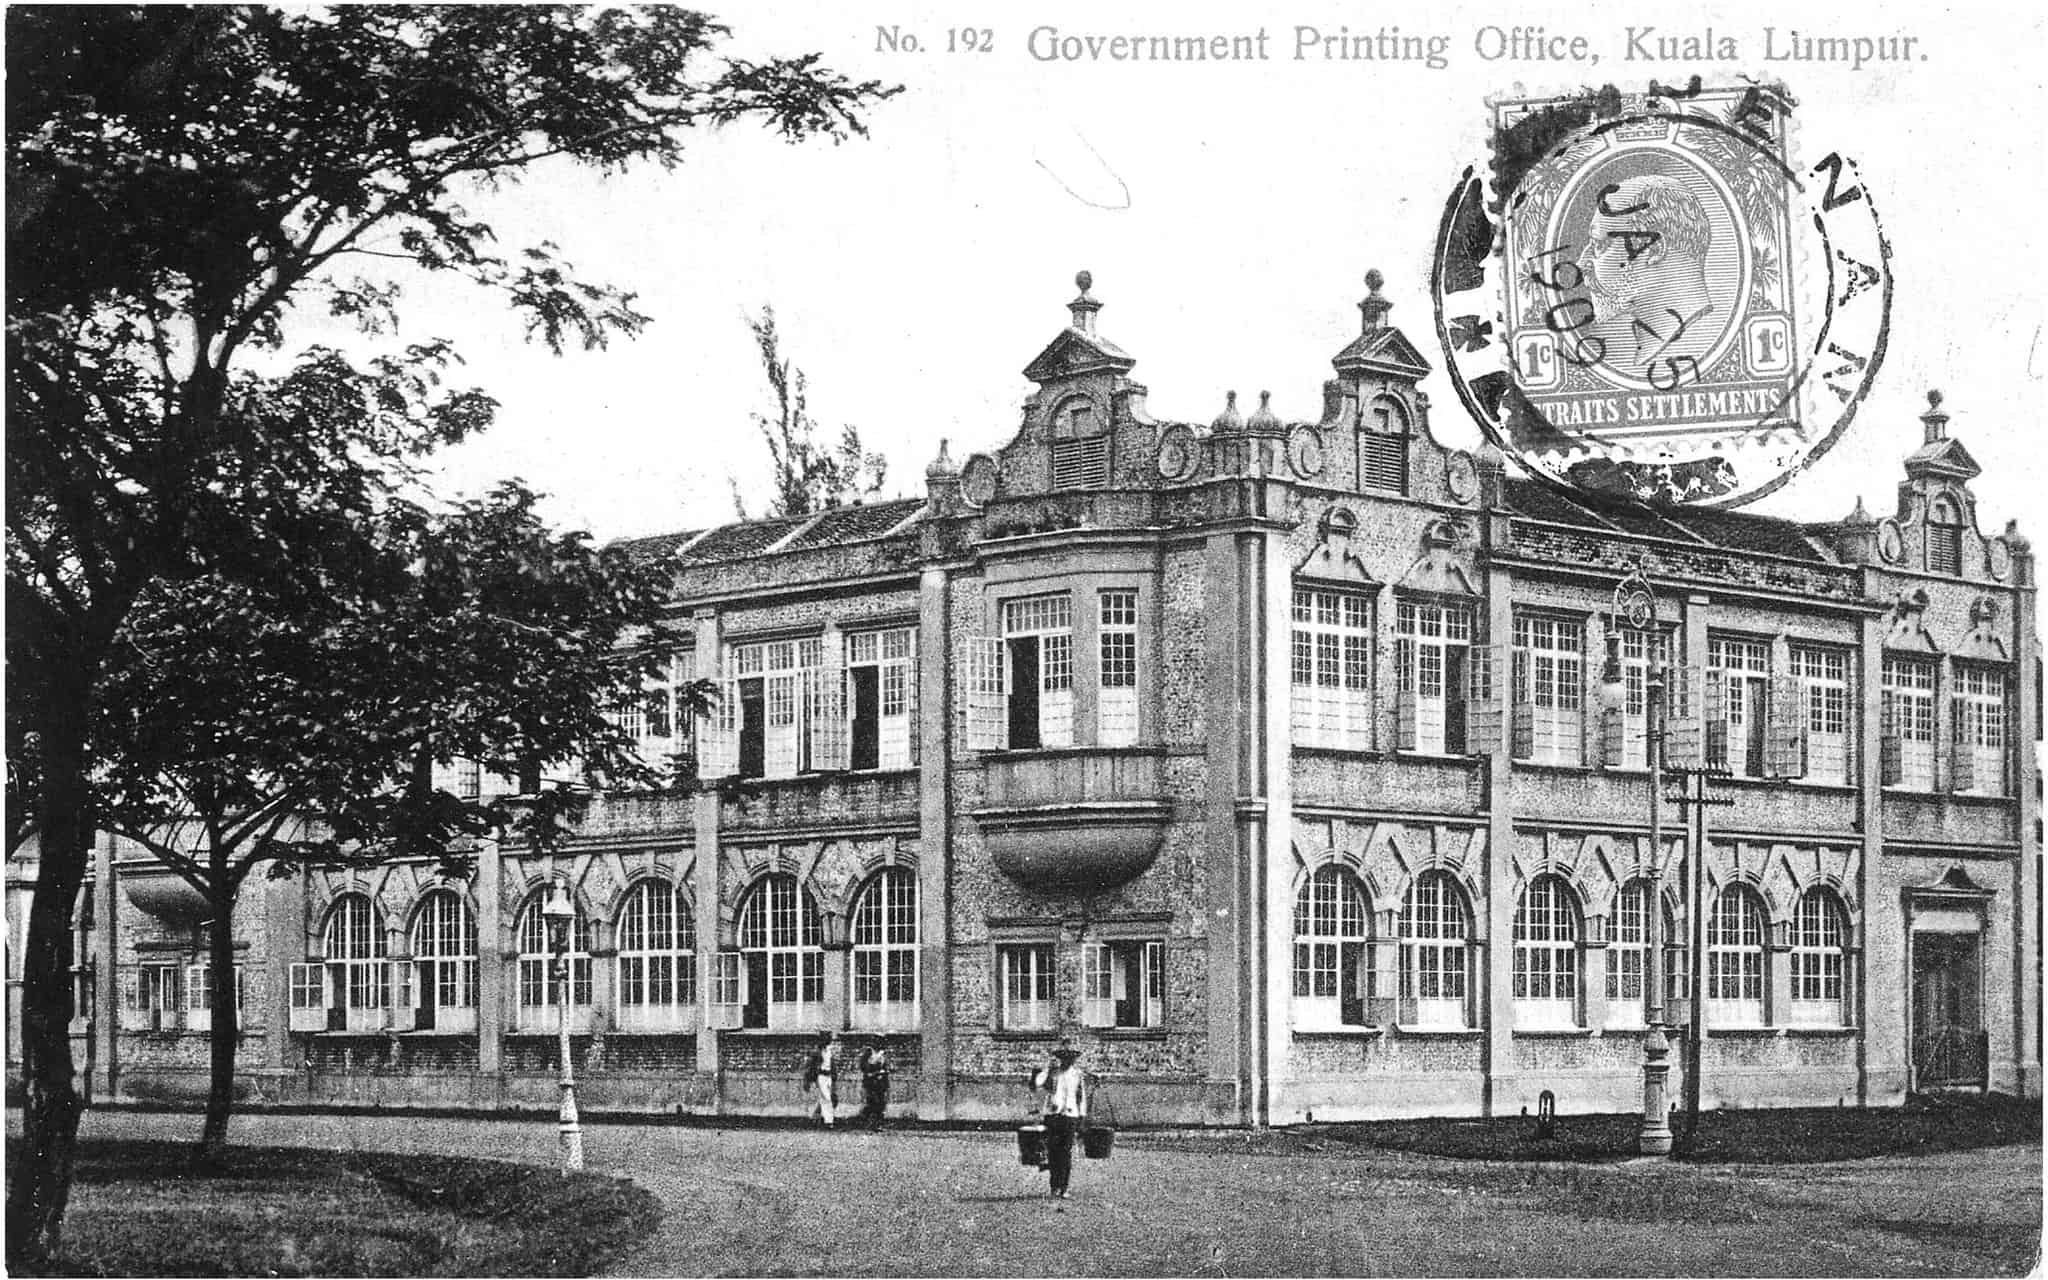 old-picture-former-Government-Printing-Office-now-City-Gallery-Kuala-Lumpur